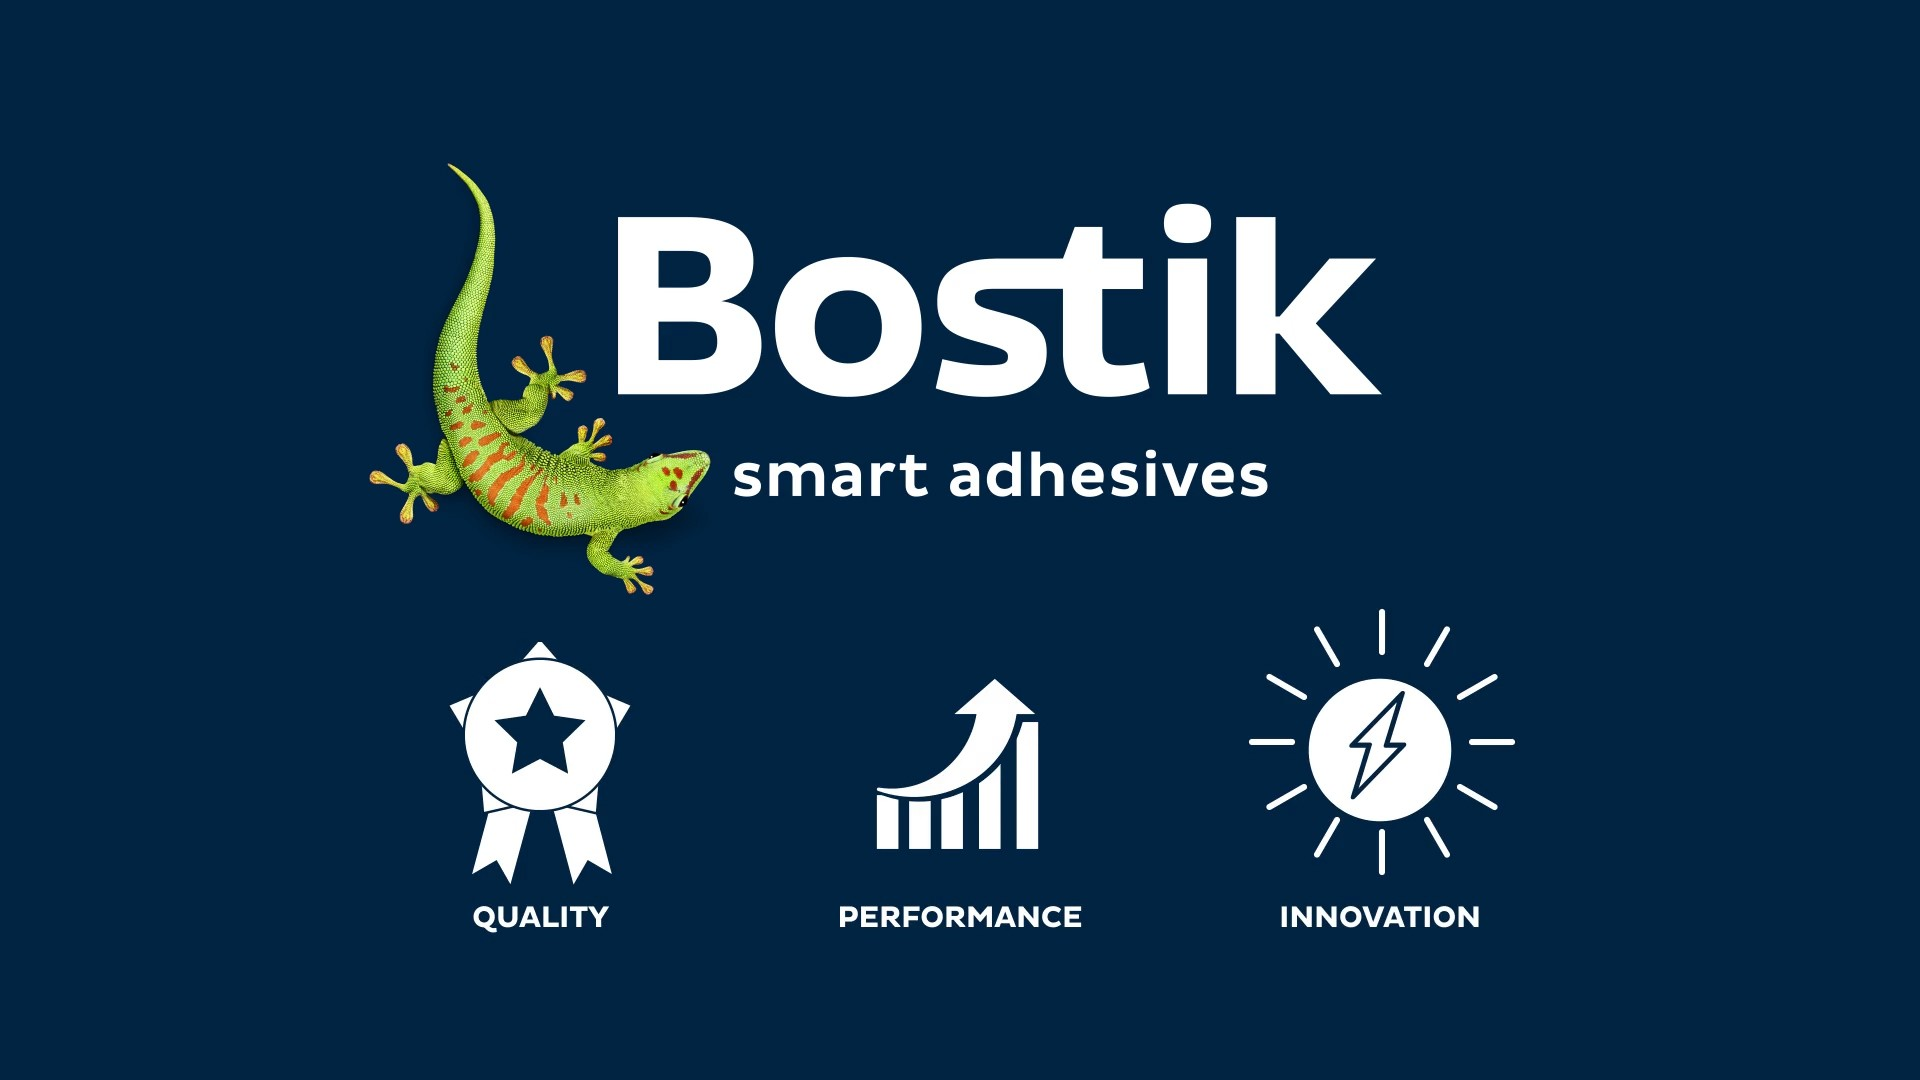 logo bostik et icones qualité performance et innovation